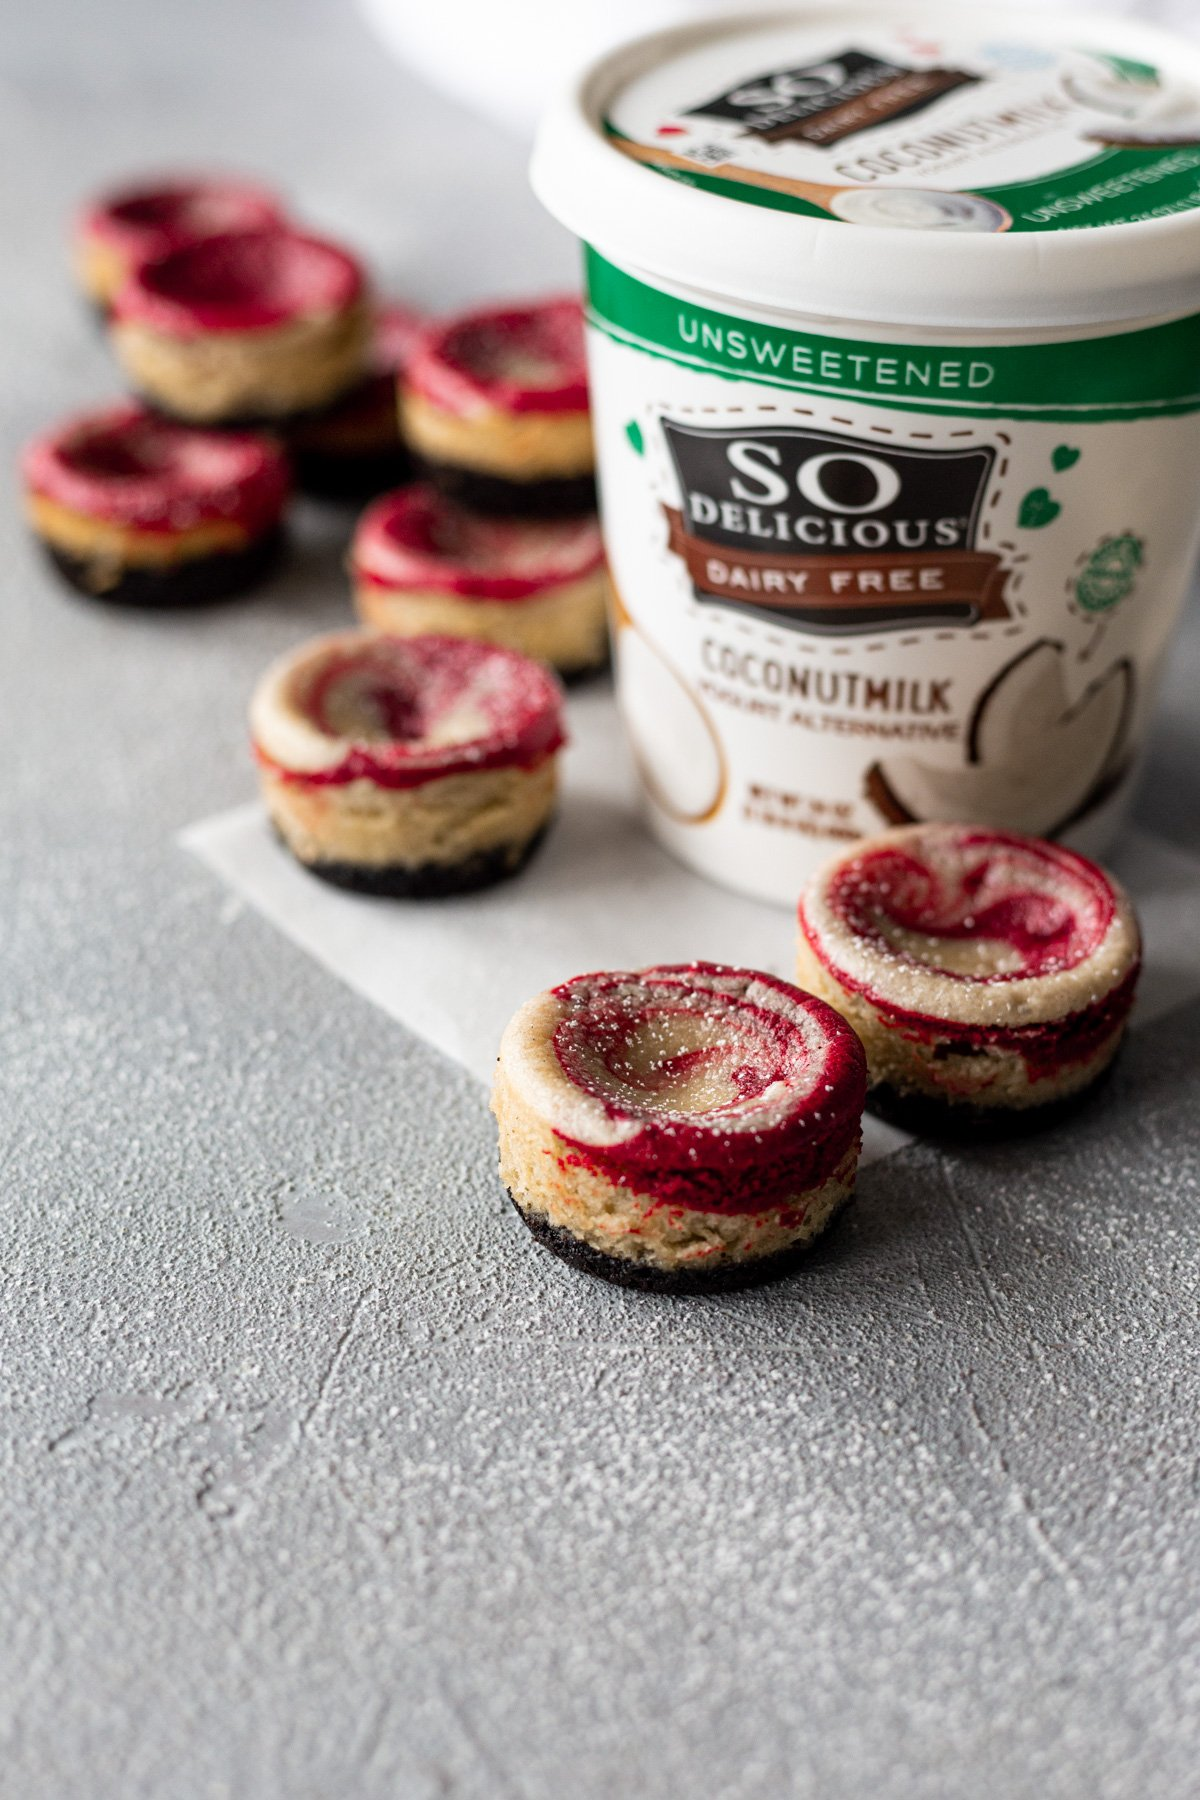 mini red velvet vegan cheesecakes with a carton of so delicious coconutmilk yogurt